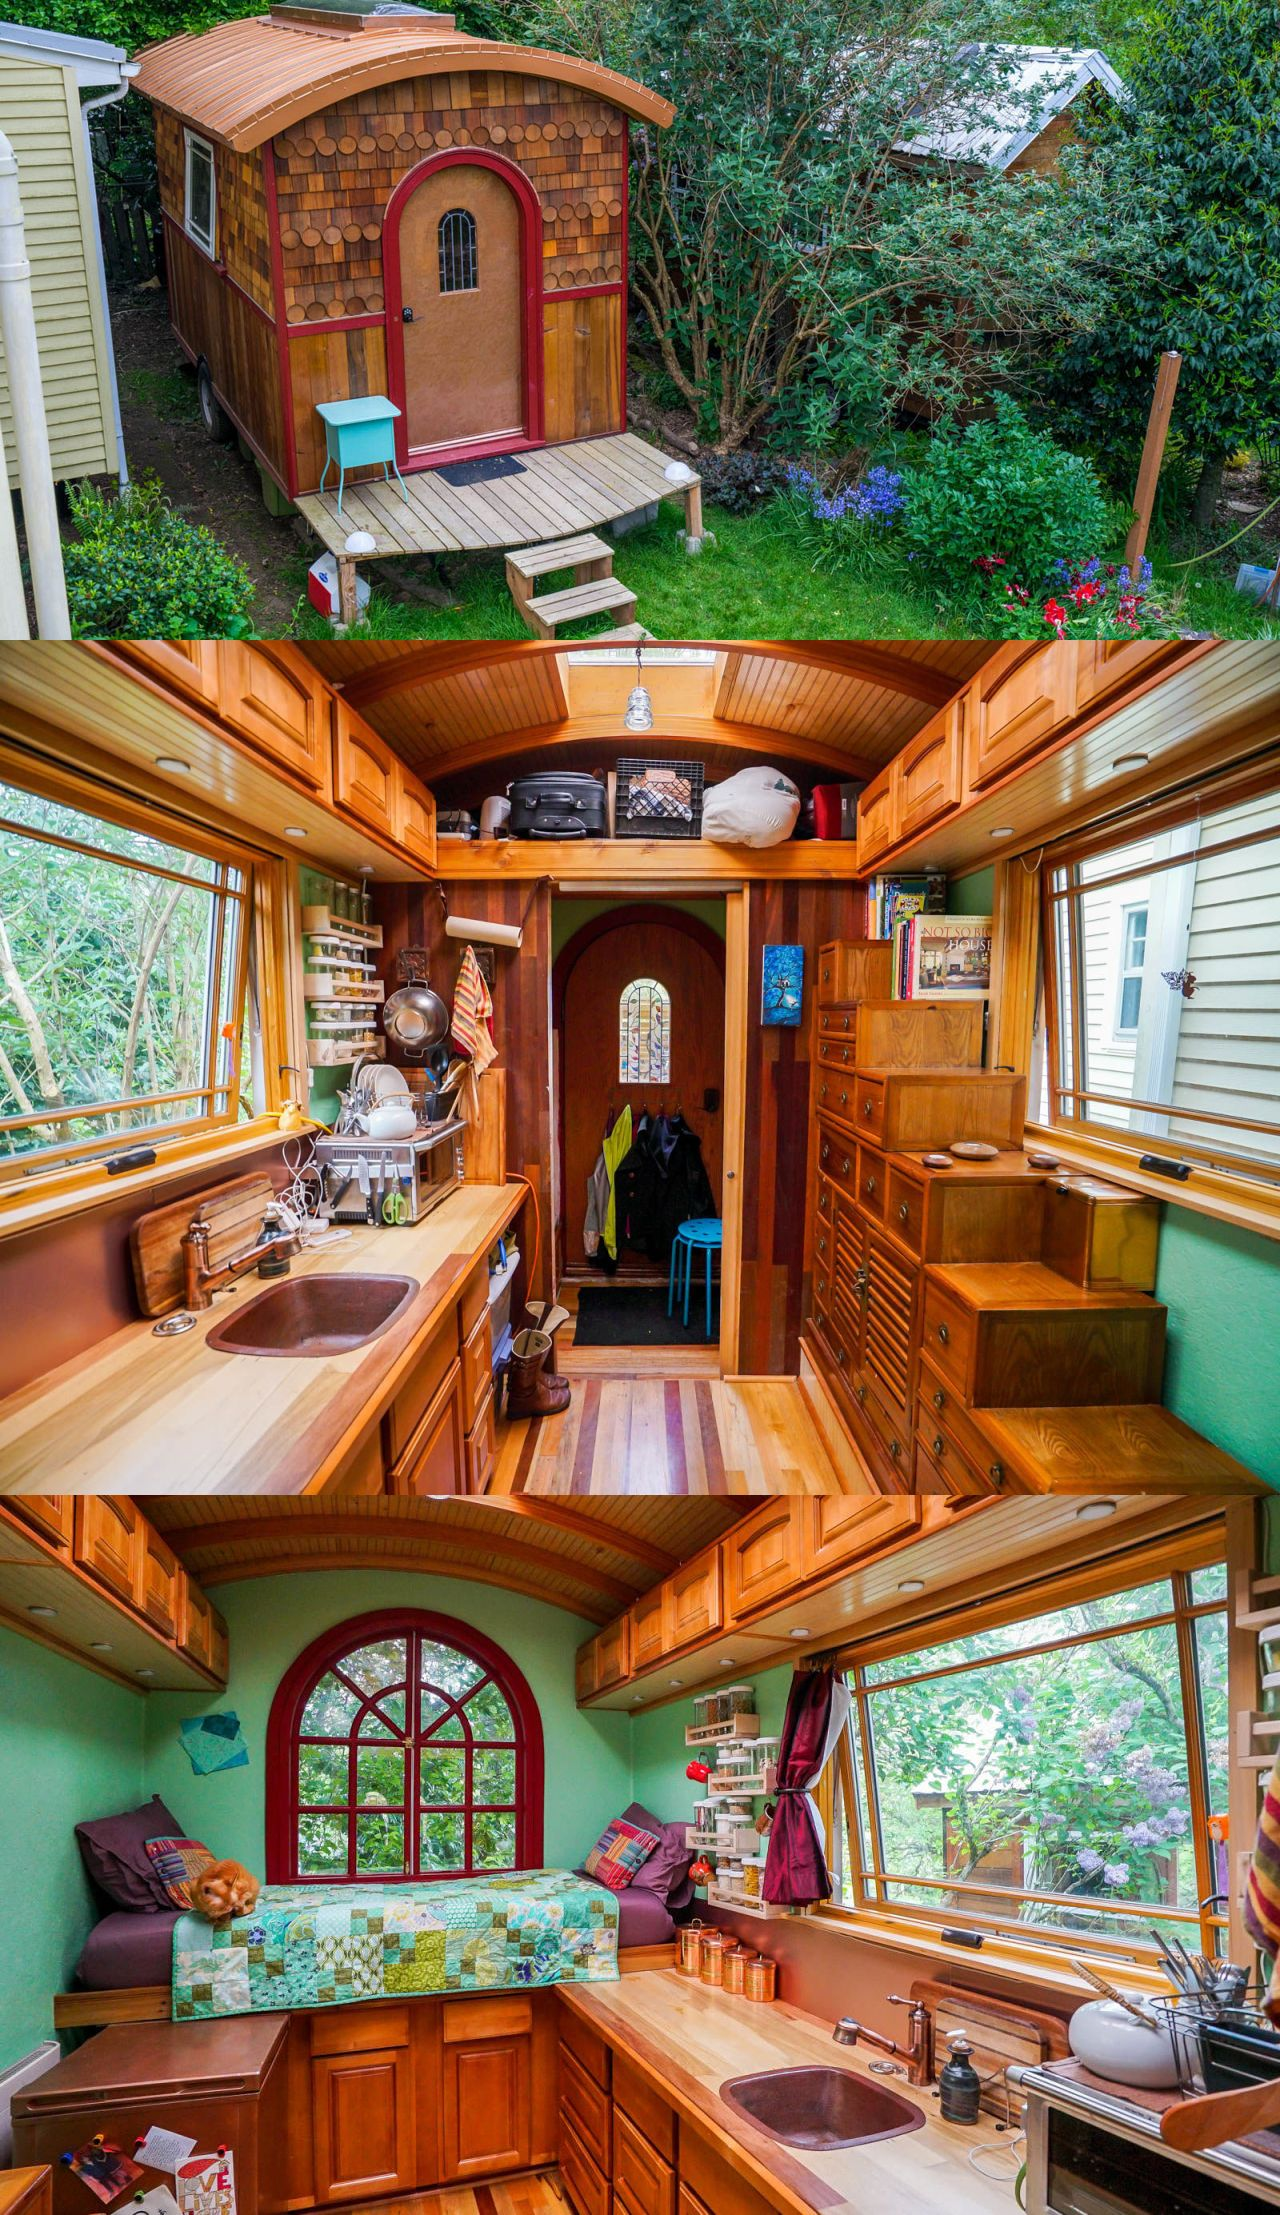 This Tiny Copper House Is Full of Small Space Surprises